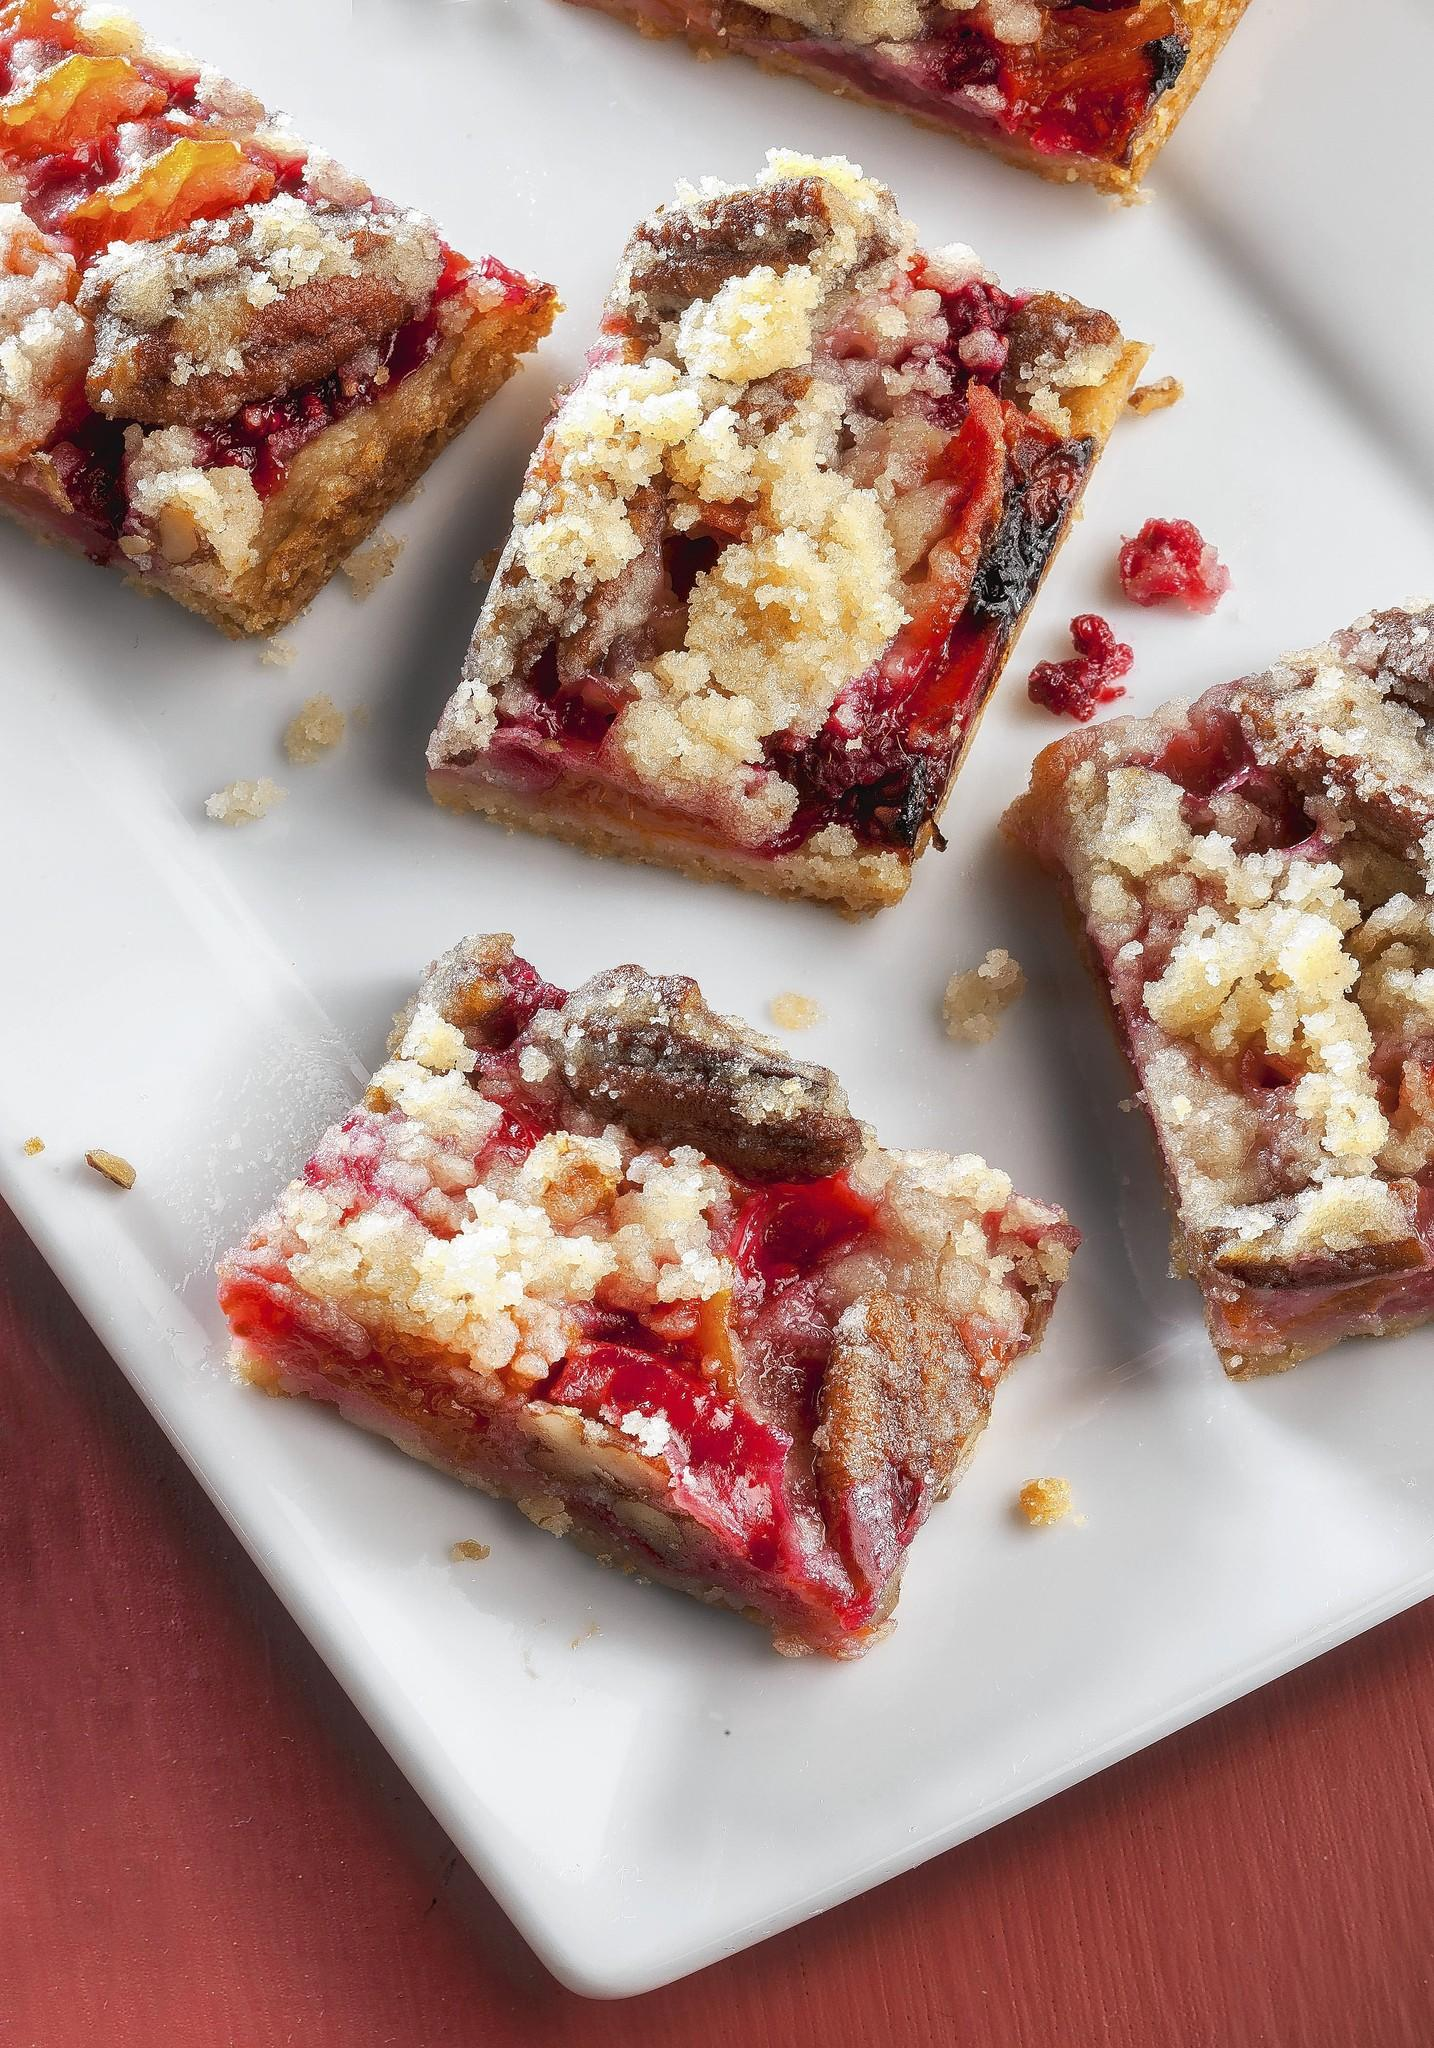 A finished dish photo of raspberry apricot bars.